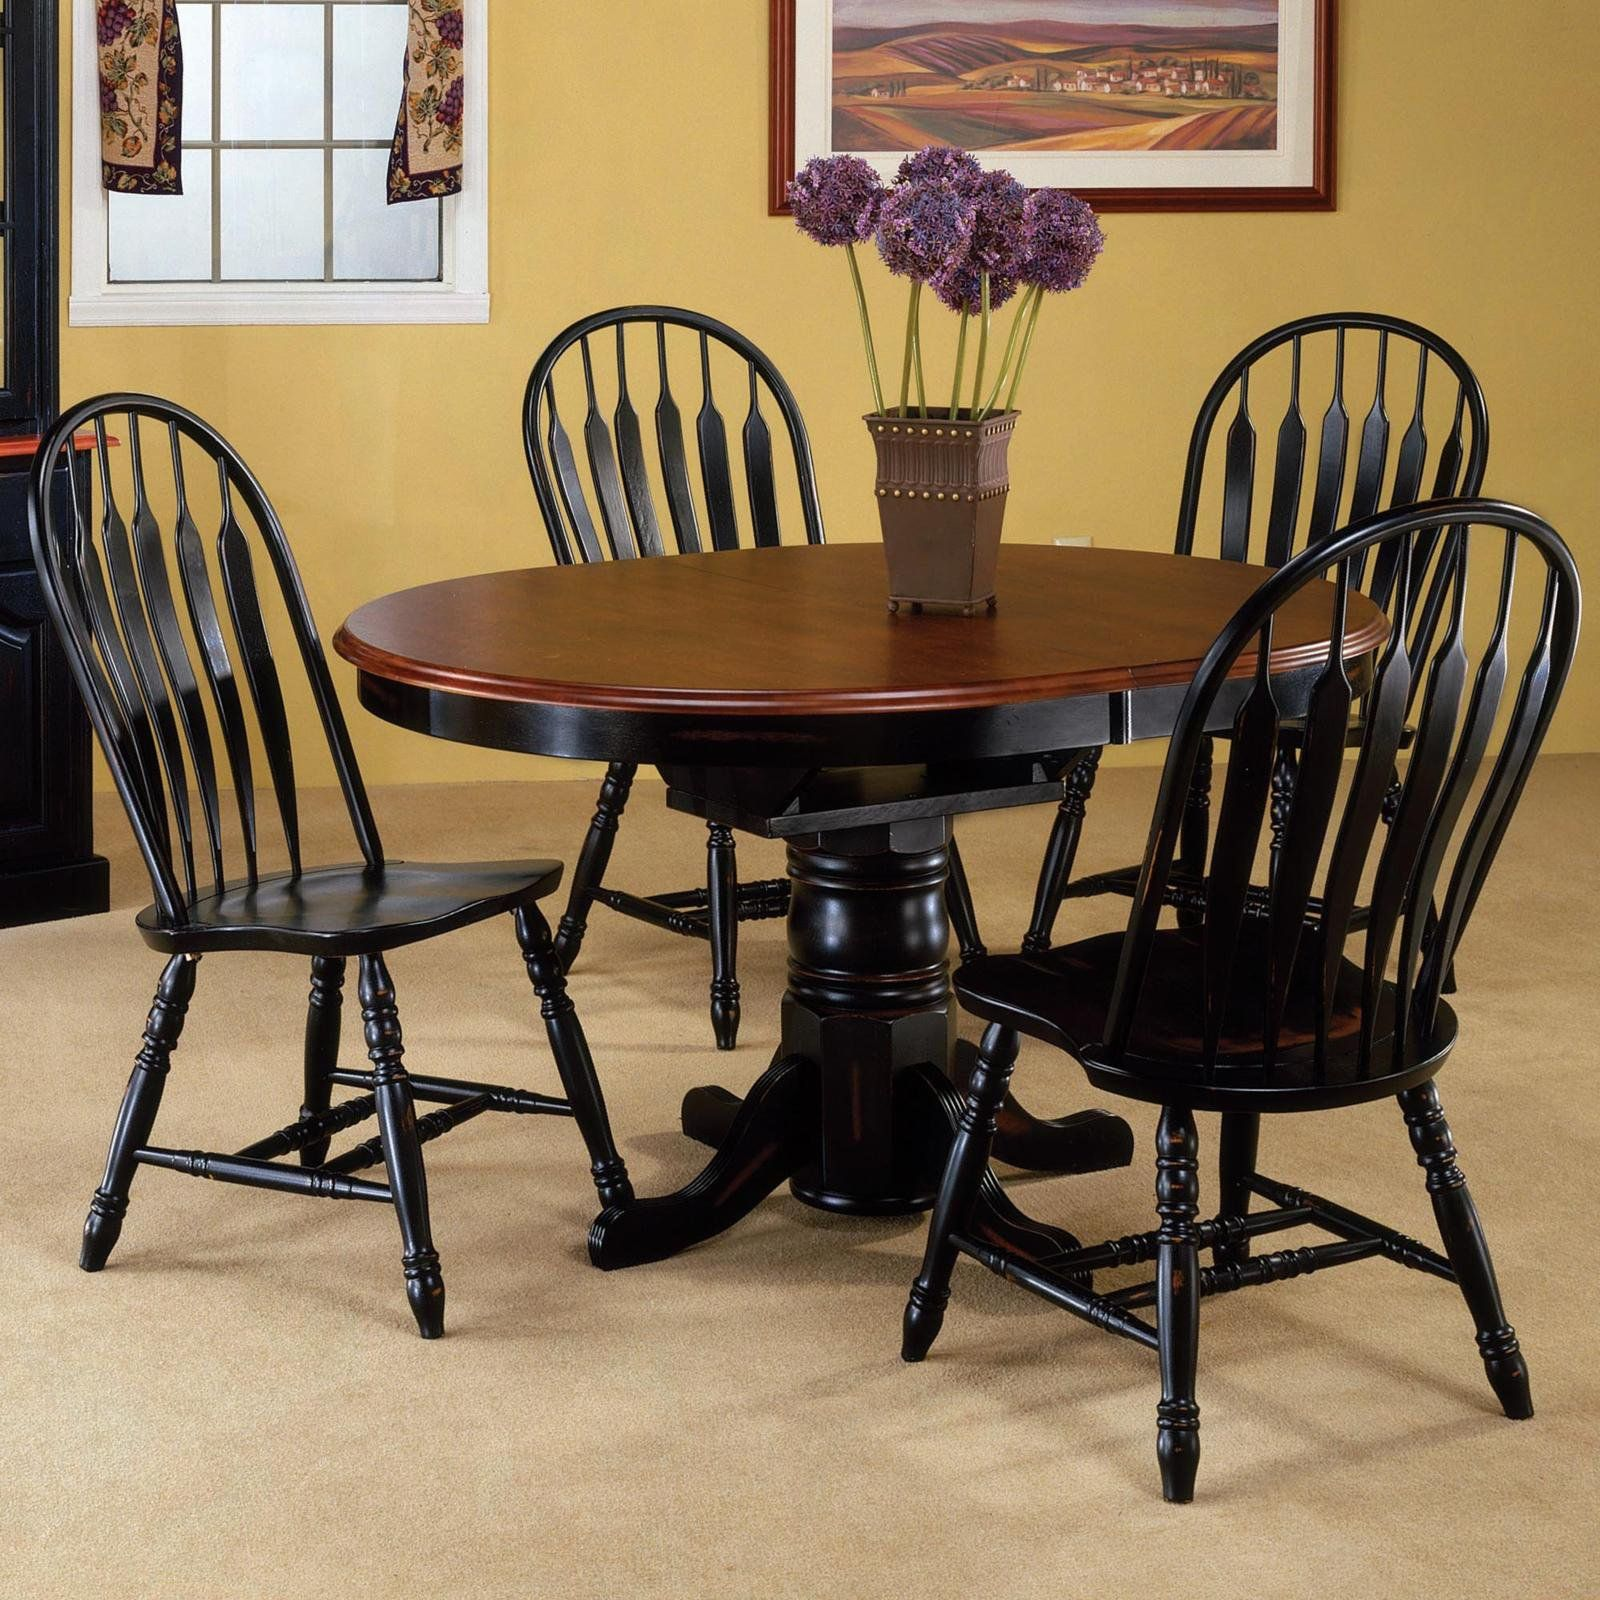 Round Dining Table Set With Leaf Extension What Is It And How It Is Used In 2020 Kitchen Table Settings Oval Kitchen Table Black Round Dining Table